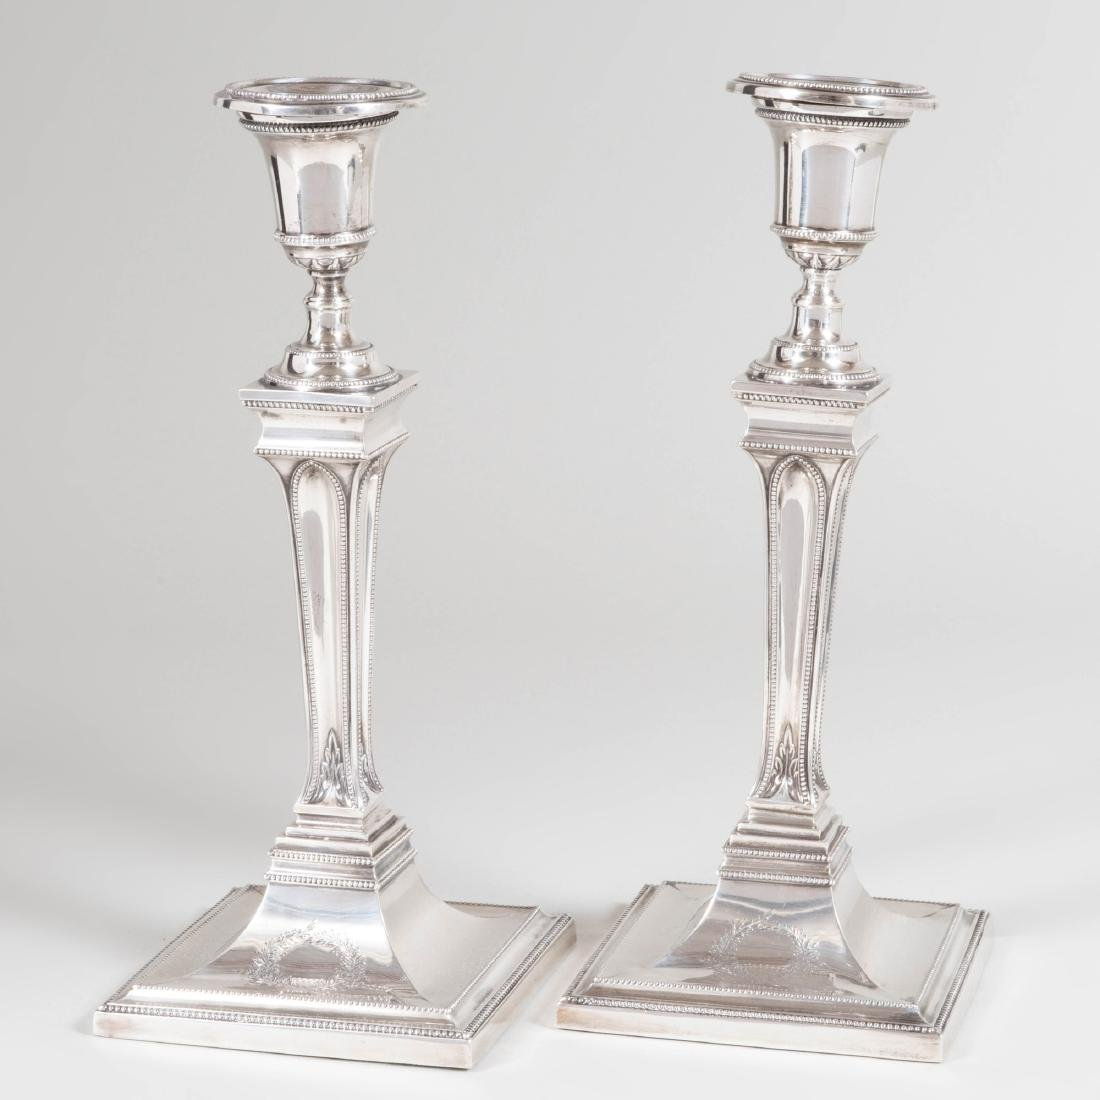 Pair of George III Silver Candlesticks - 2